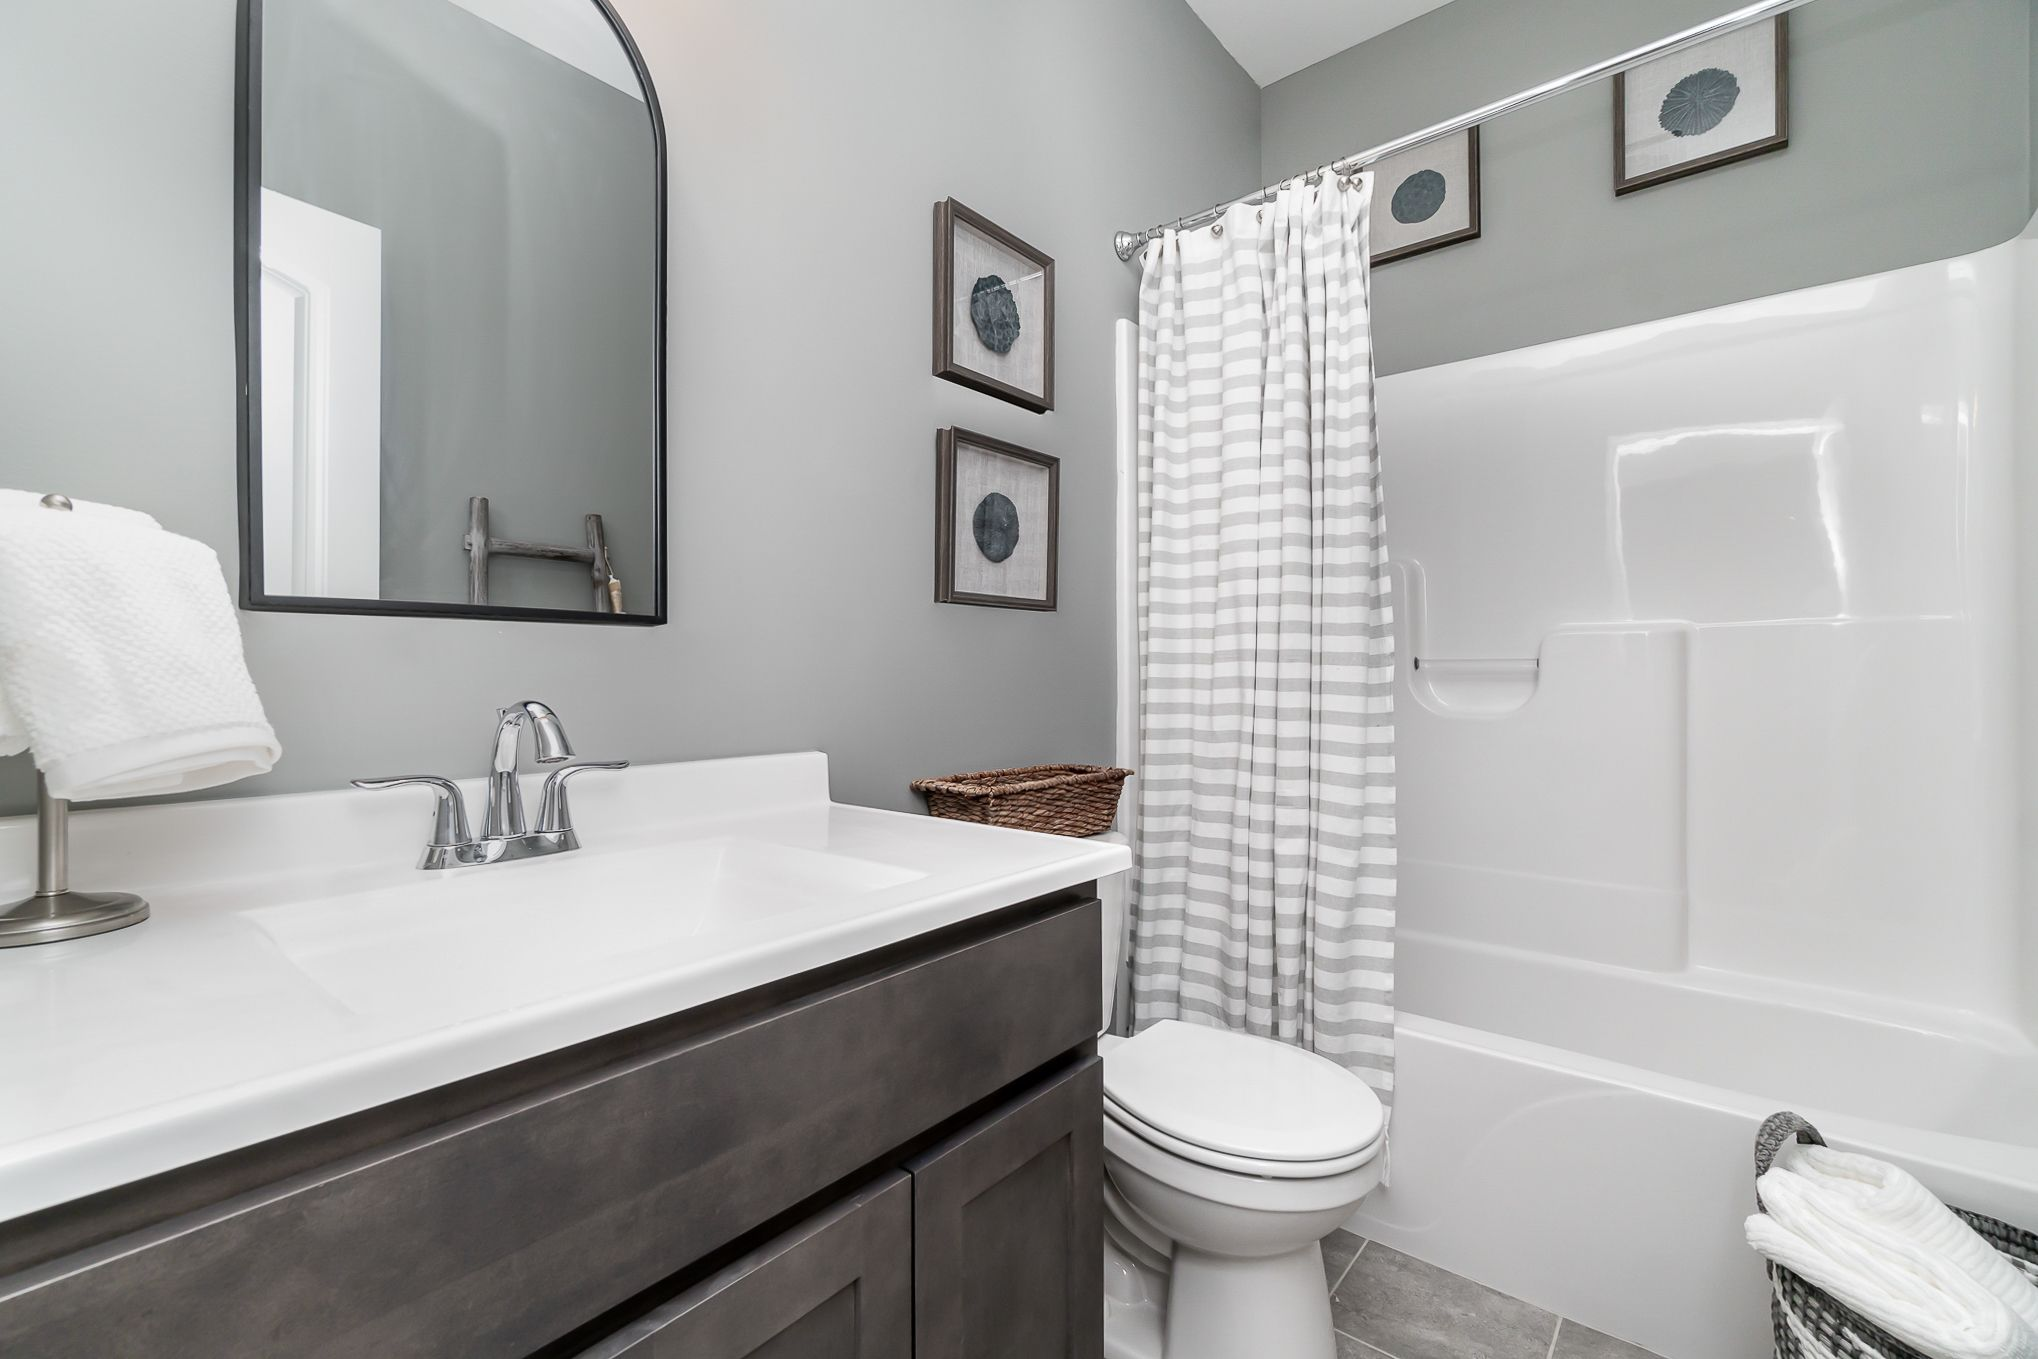 Bathroom featured in the Harmony By Olthof Homes in Indianapolis, IN